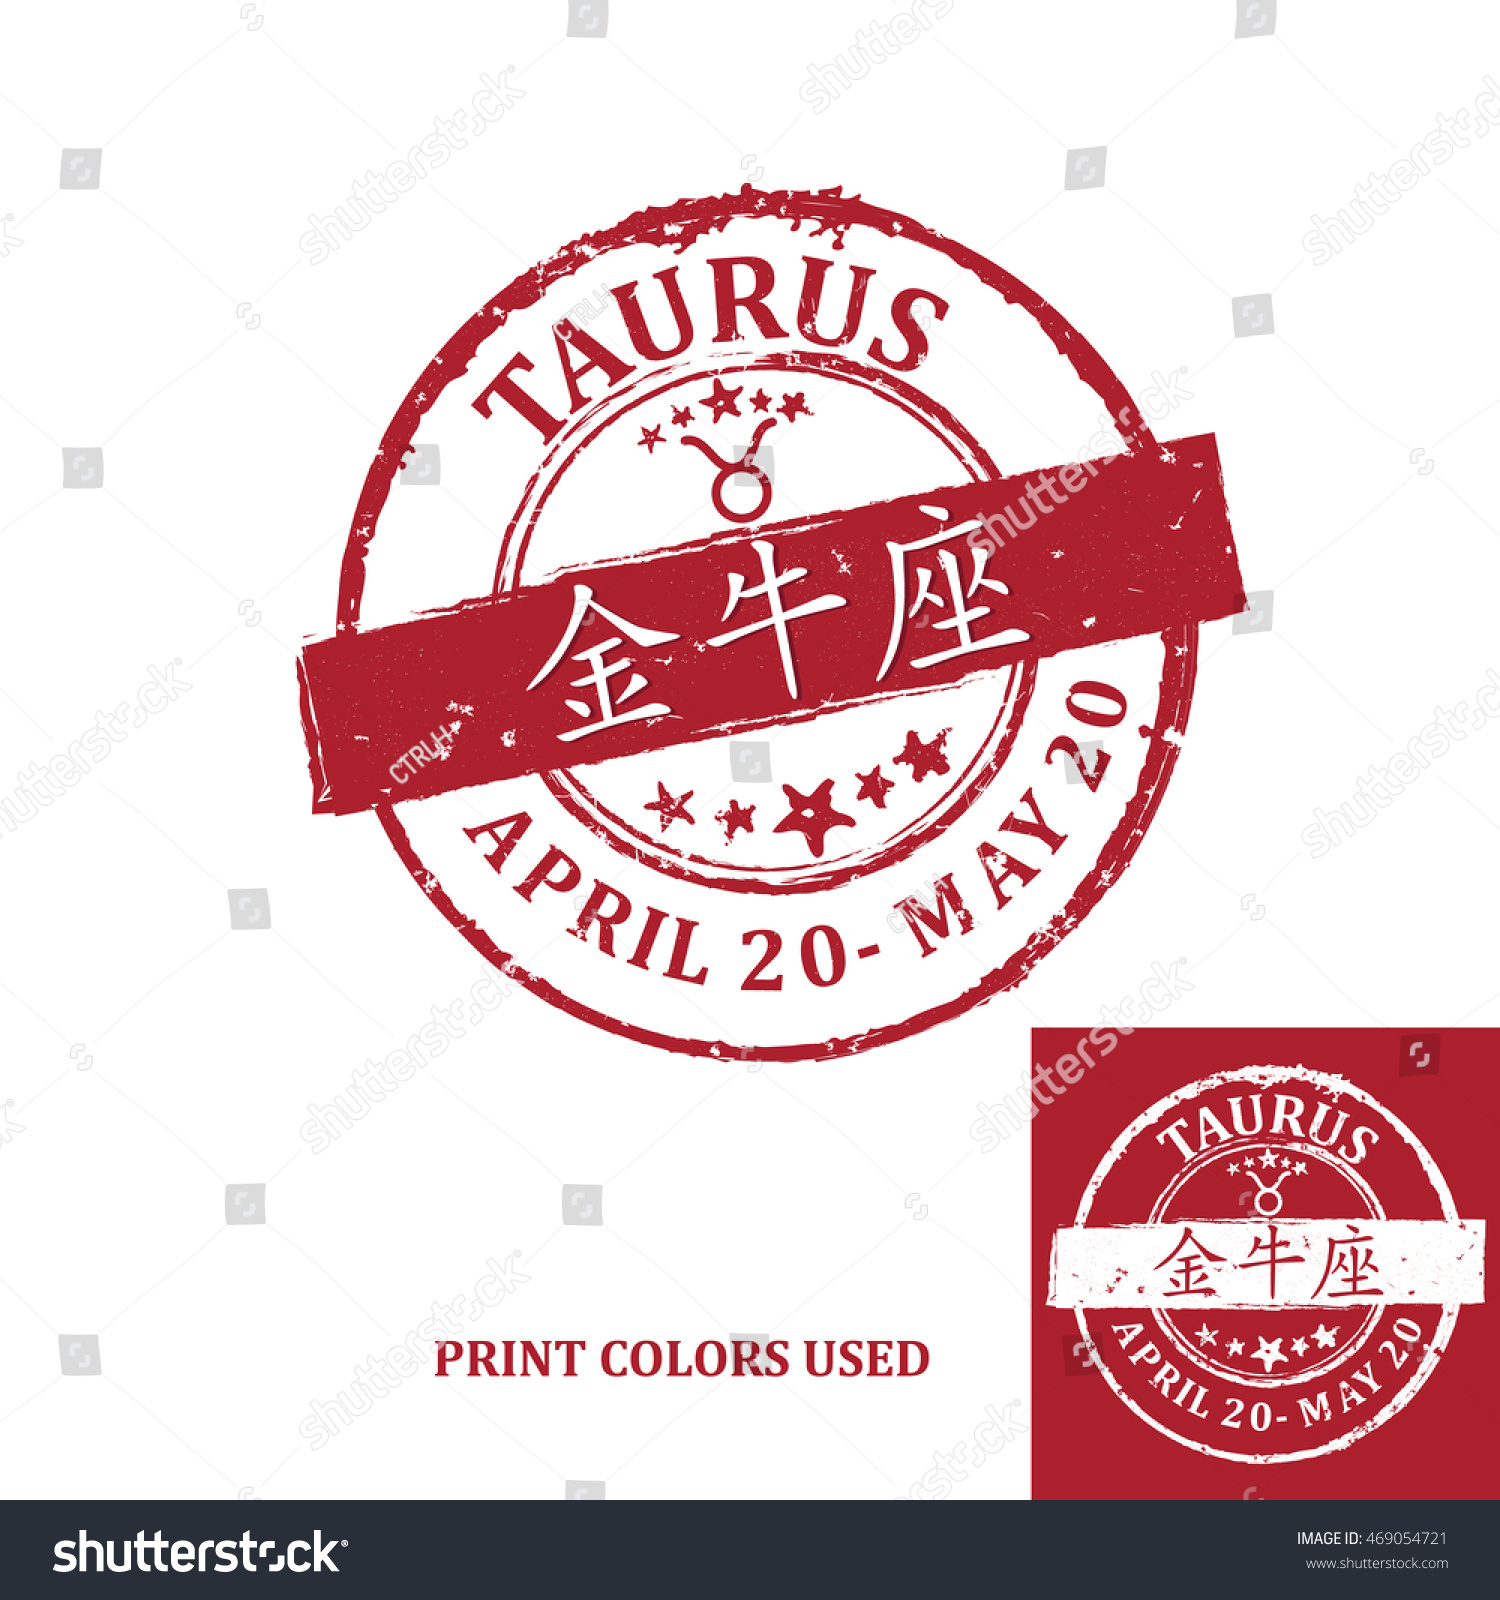 Taurus chinese text translation horoscope element stock vector taurus chinese text translation horoscope element one of the twelve equatorial constellations biocorpaavc Images